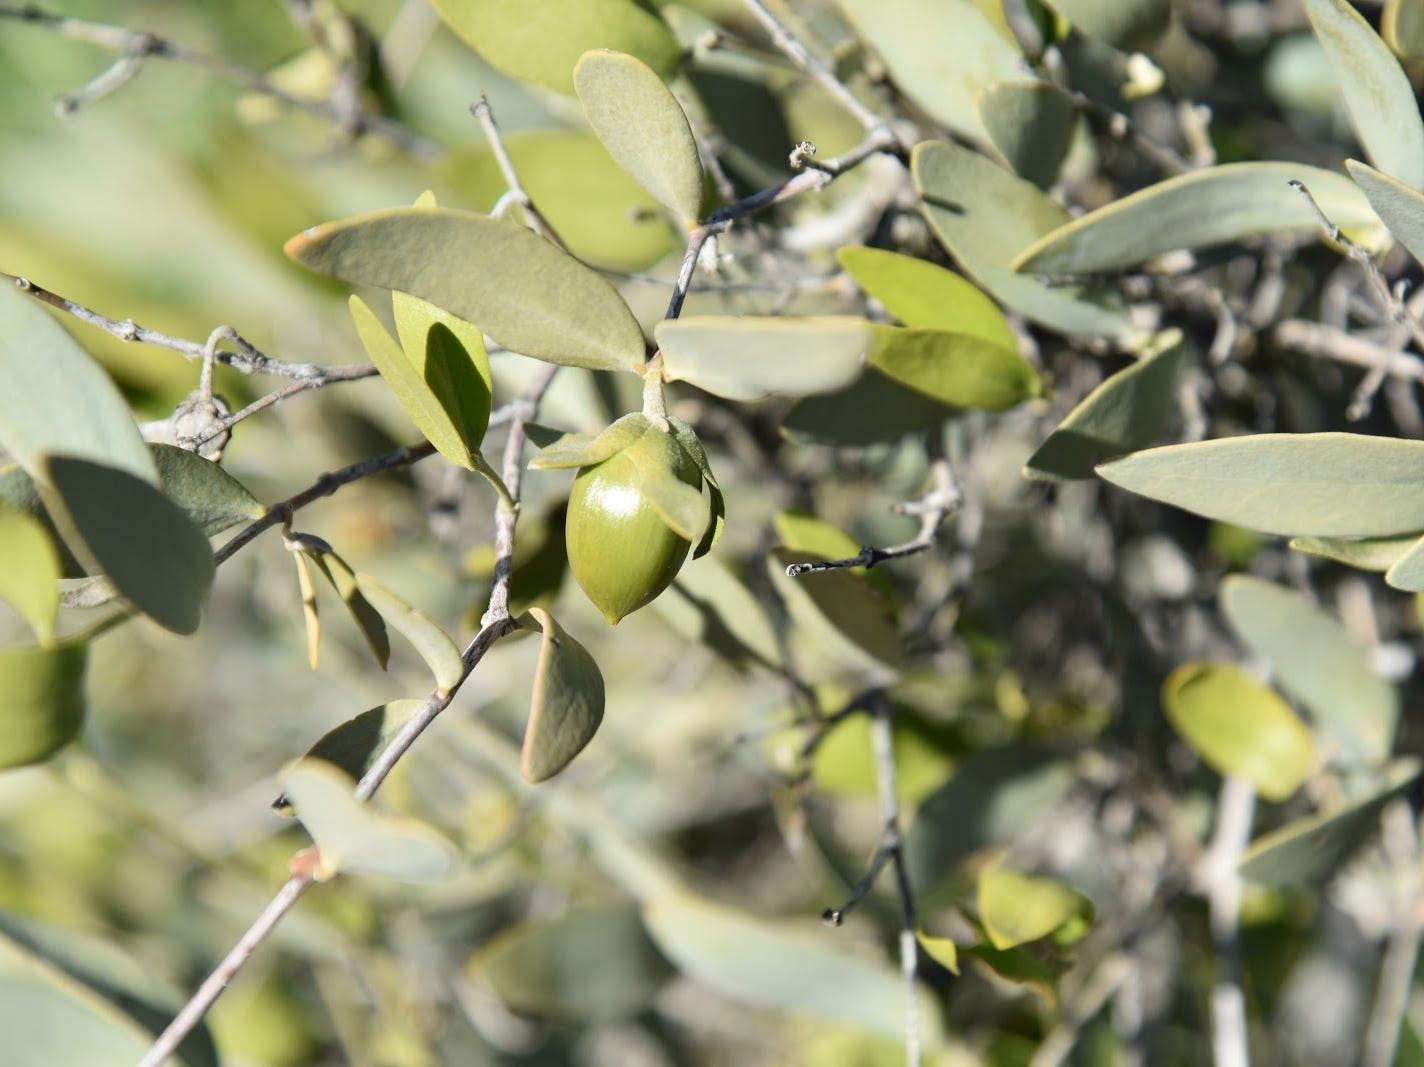 A fresh crop of jojoba fruits ripen on bushes.